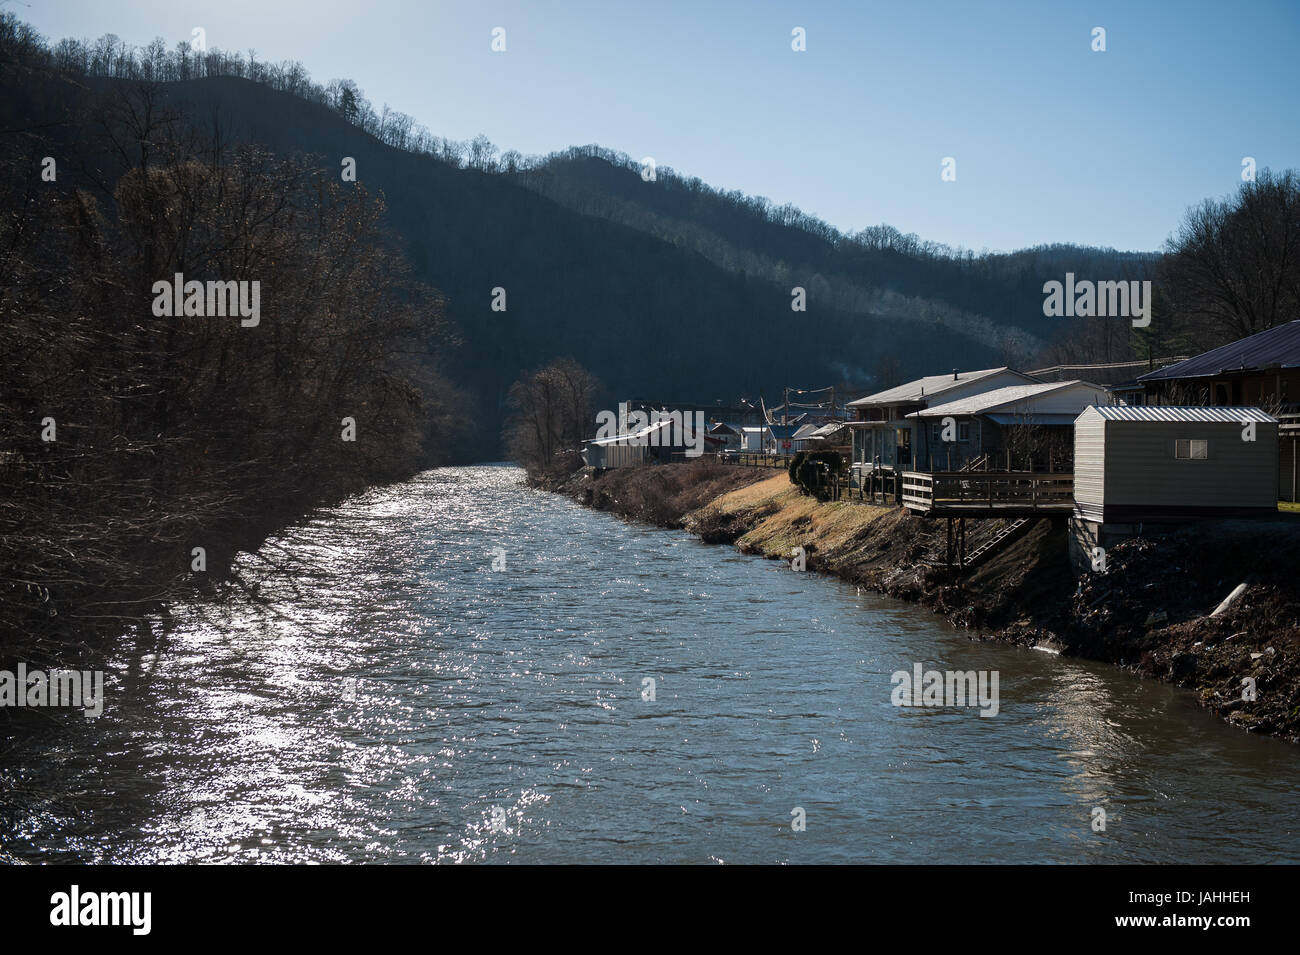 The morning sun rises over the Coal River in Whitesville, WV, home to base of operations for the WV Clean Water Stock Photo